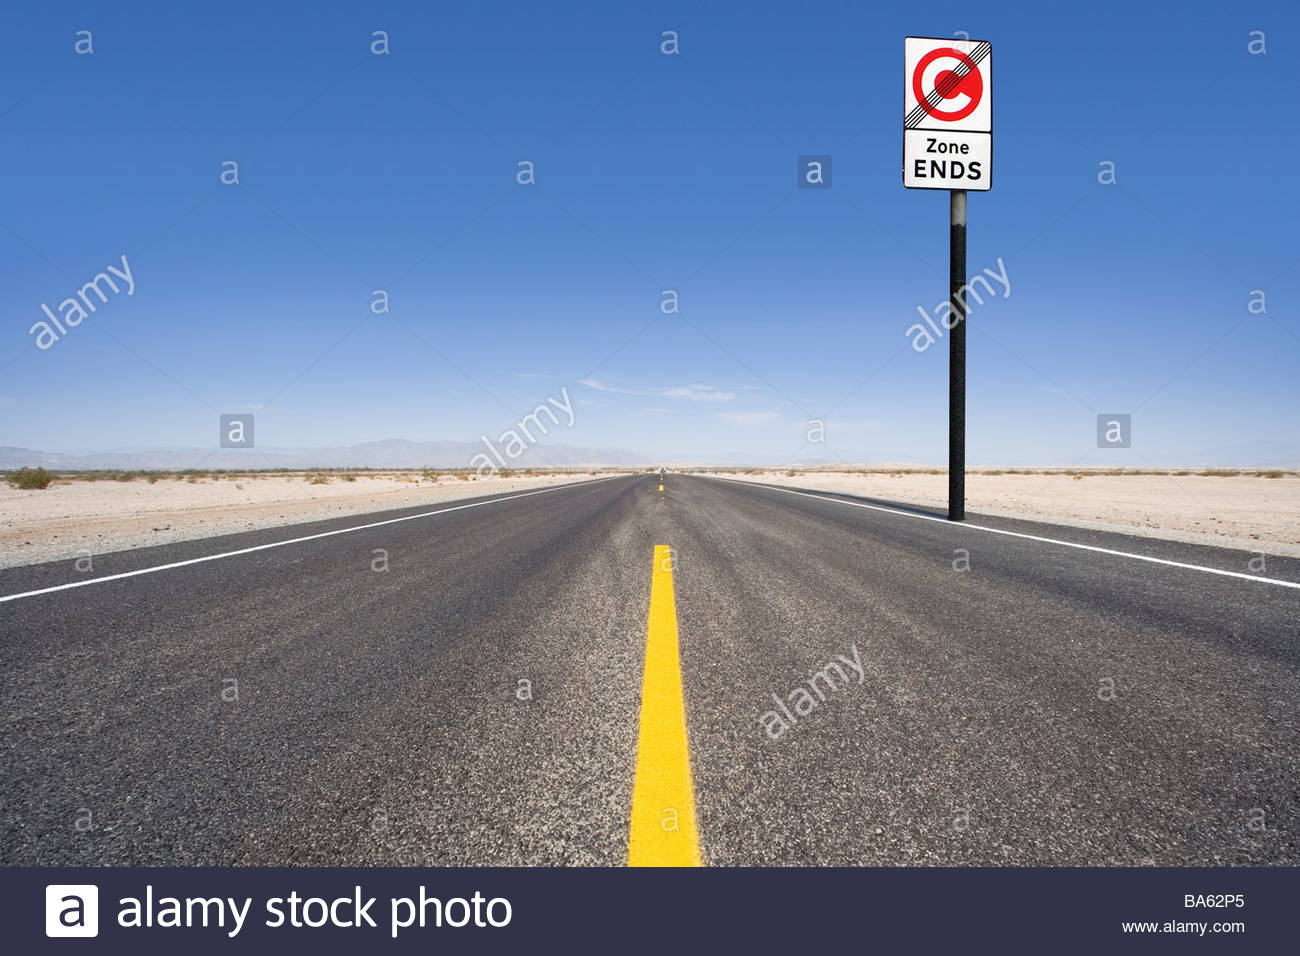 Congestion charge road sign along remote road - Stock Image